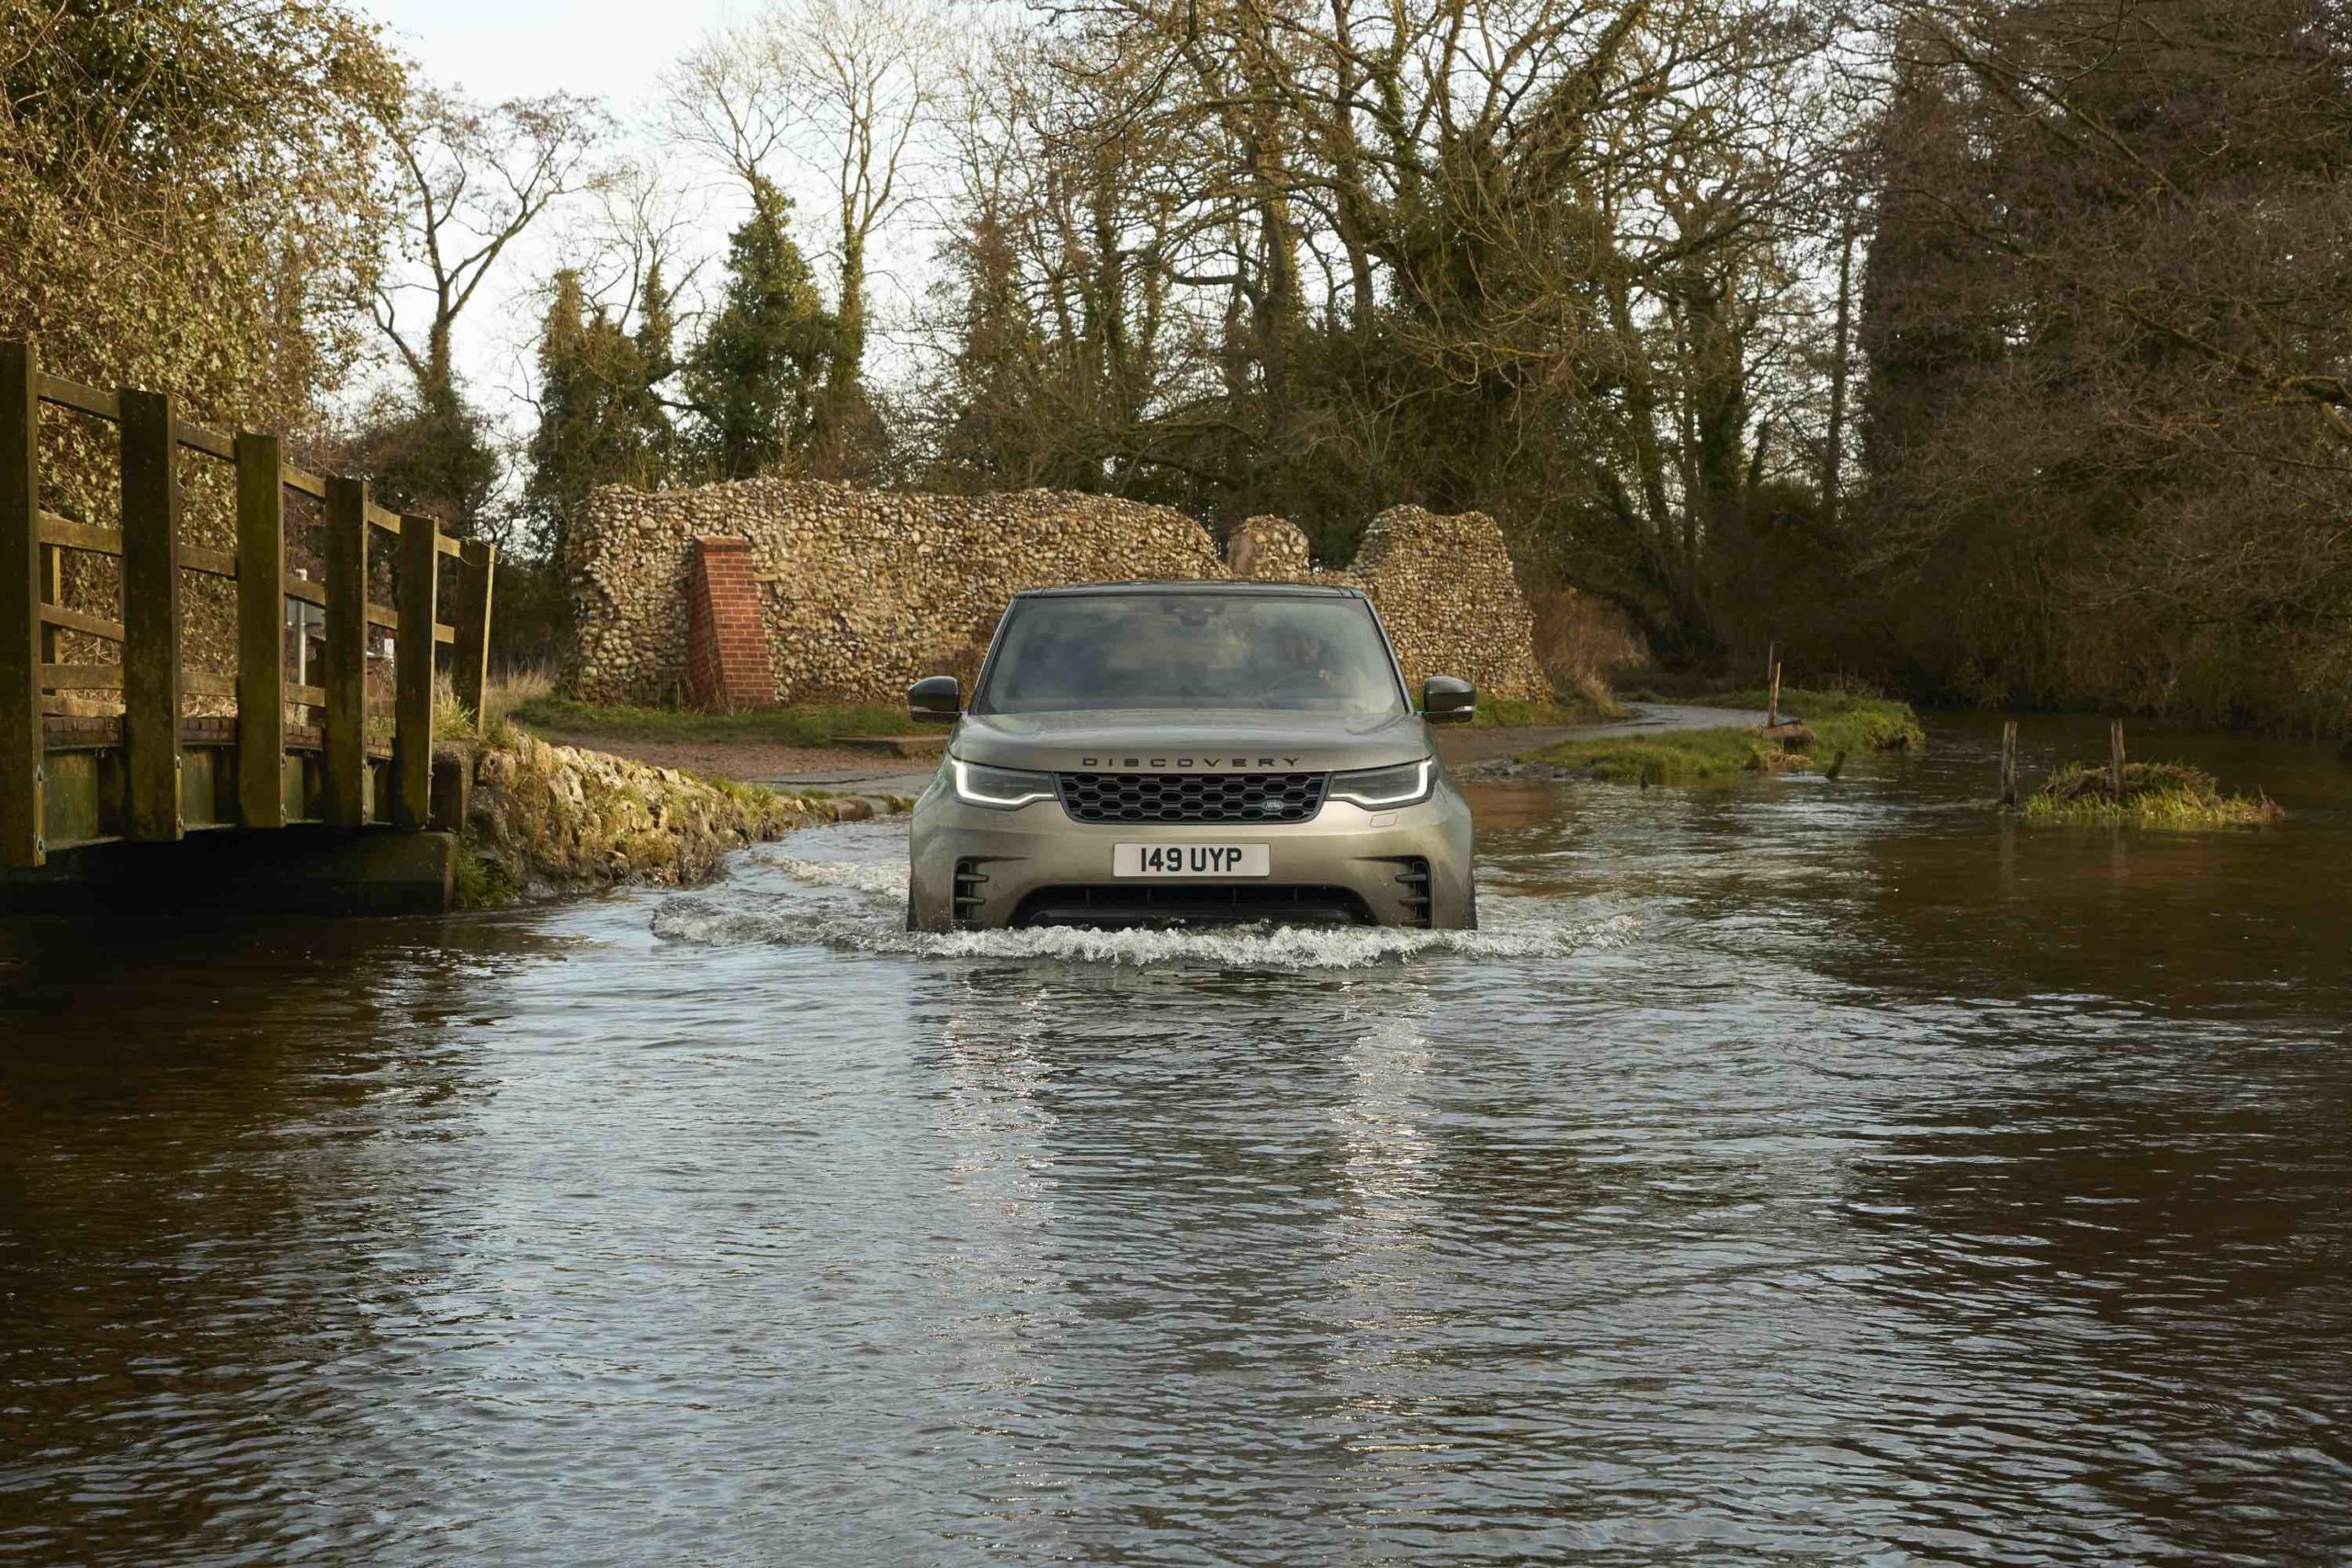 Land Rover Discovery water fording